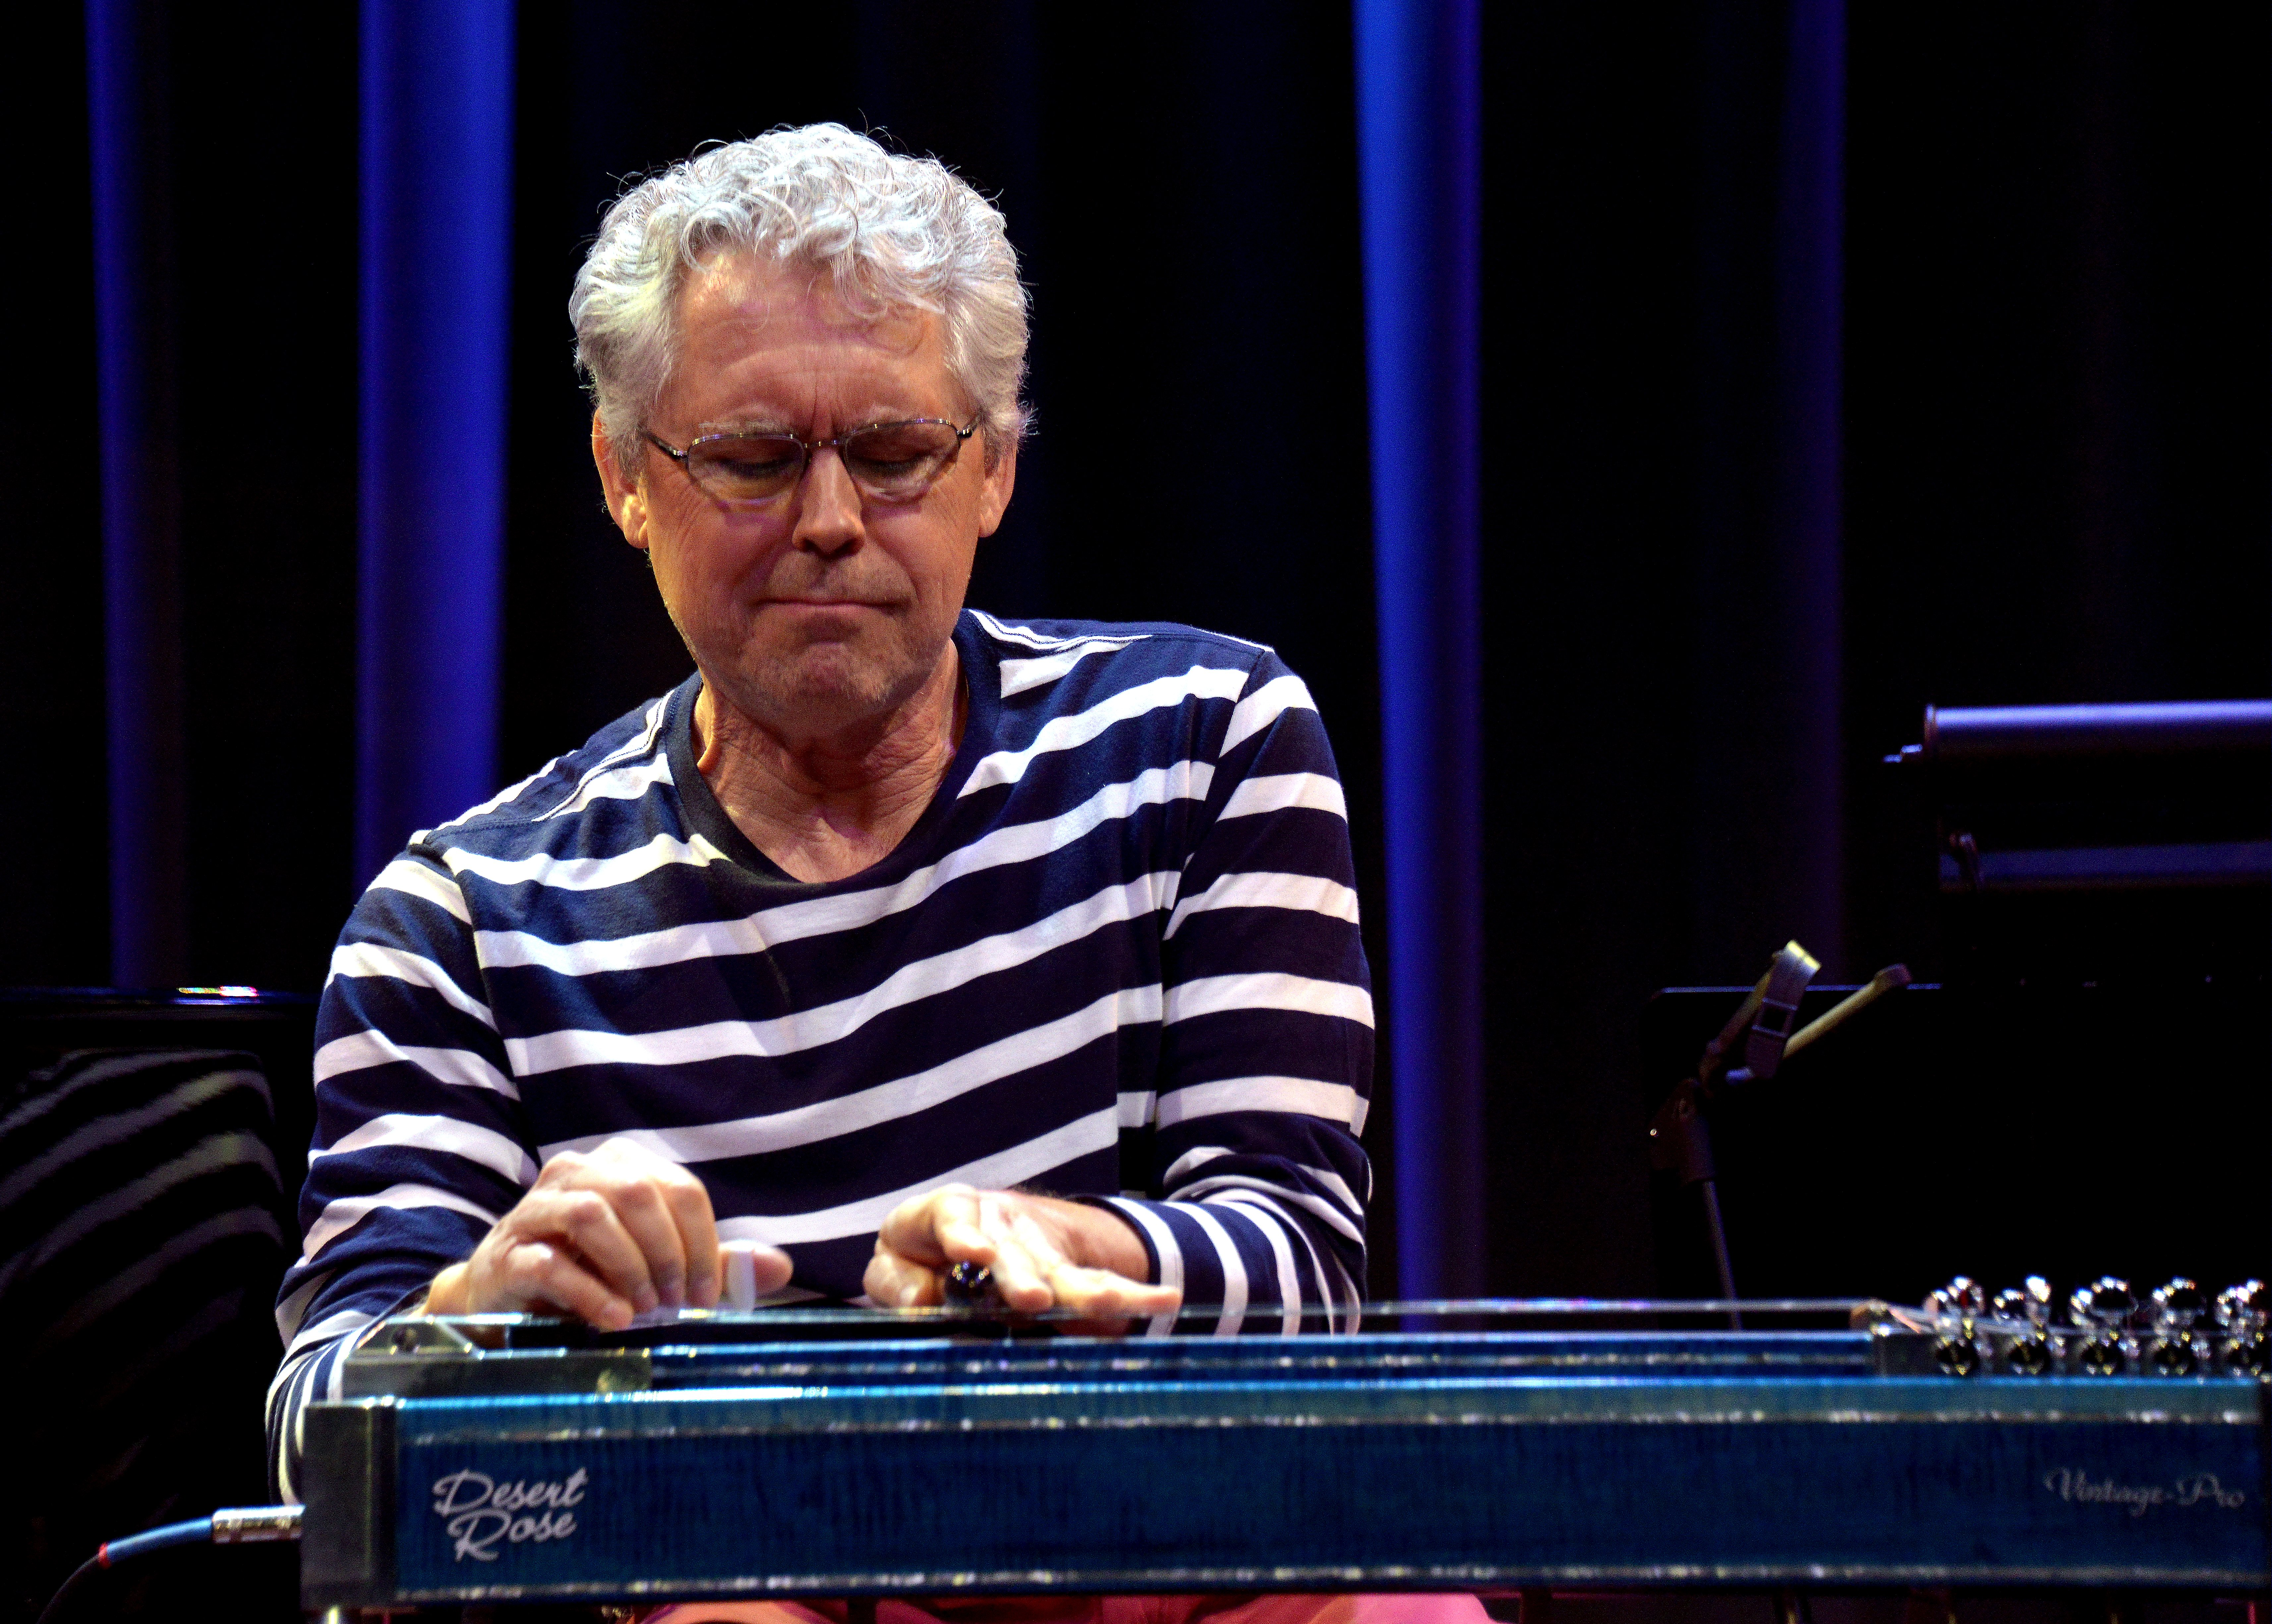 Joel Ferguson tears up the pedal steel with his original song